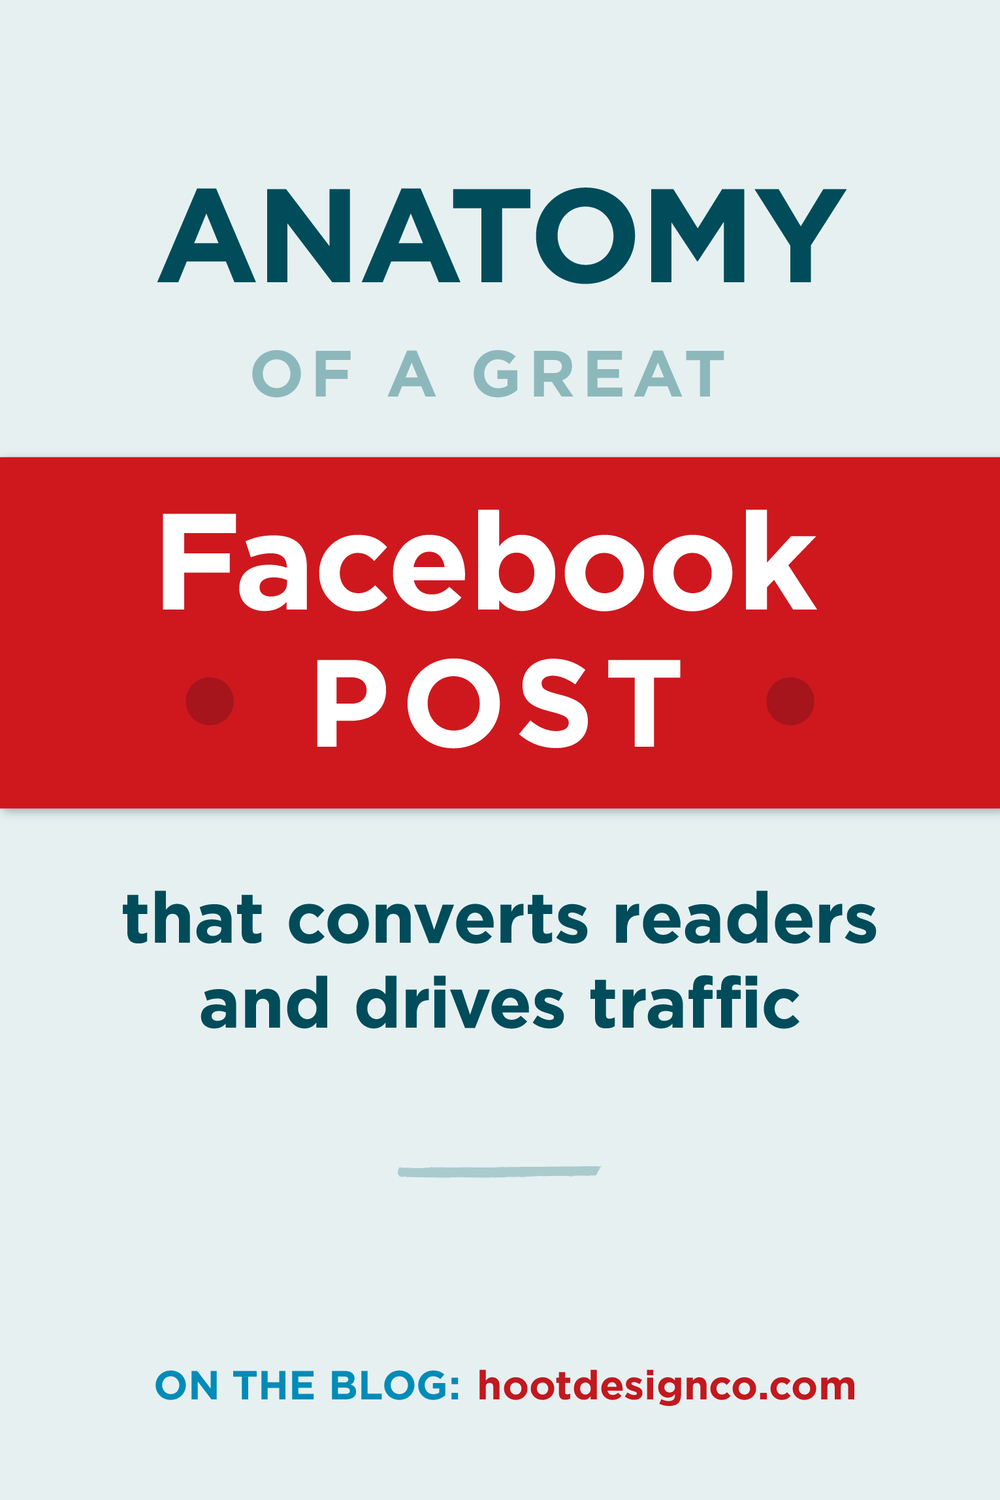 Anatomy of a Great Facebook Post (blog post)